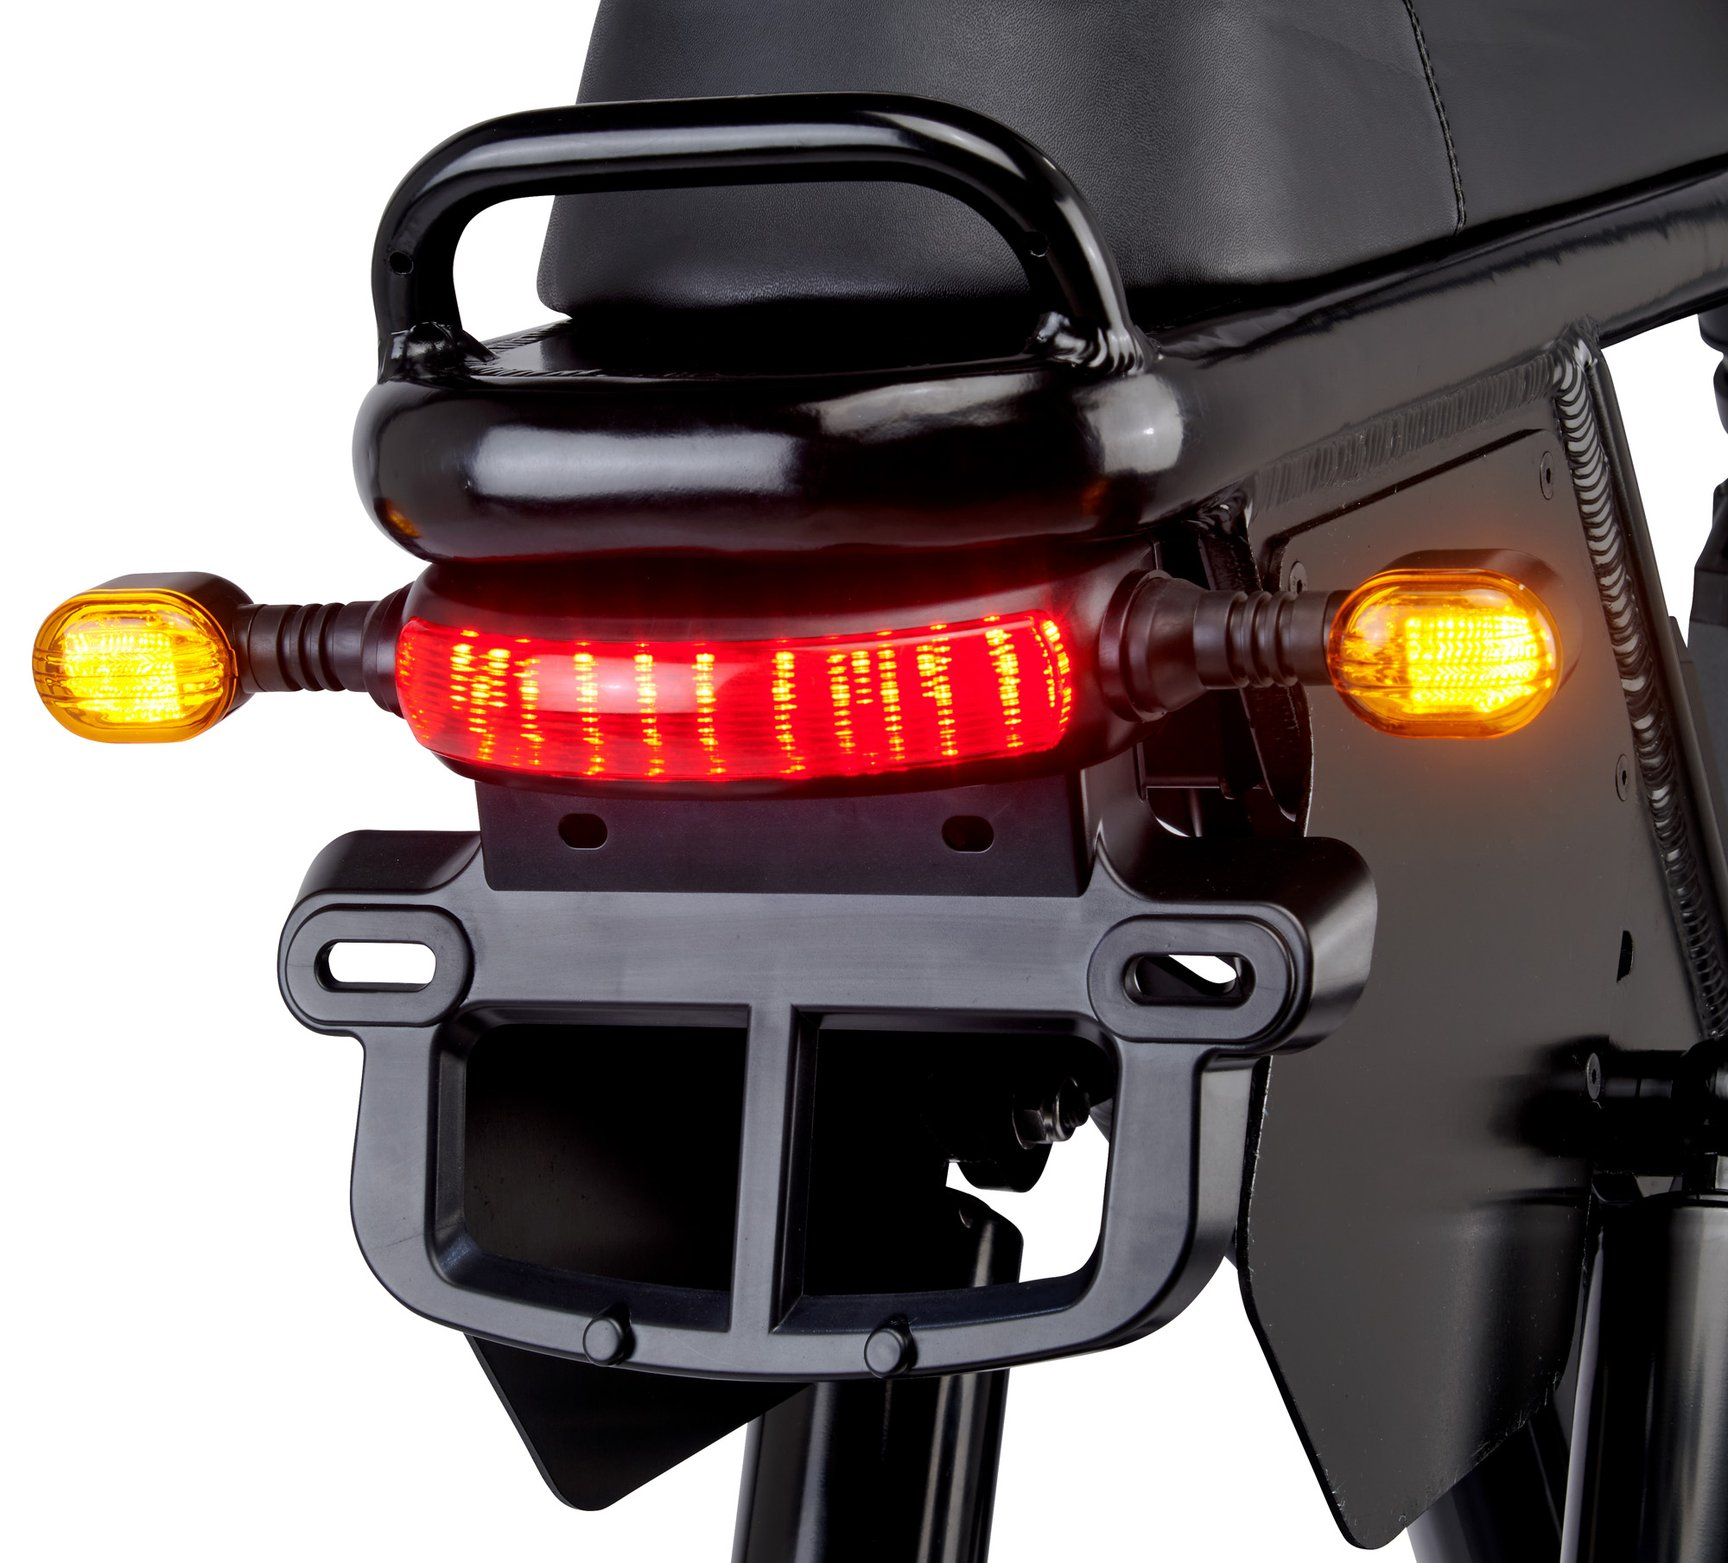 HyperScrambler 2 Taillight